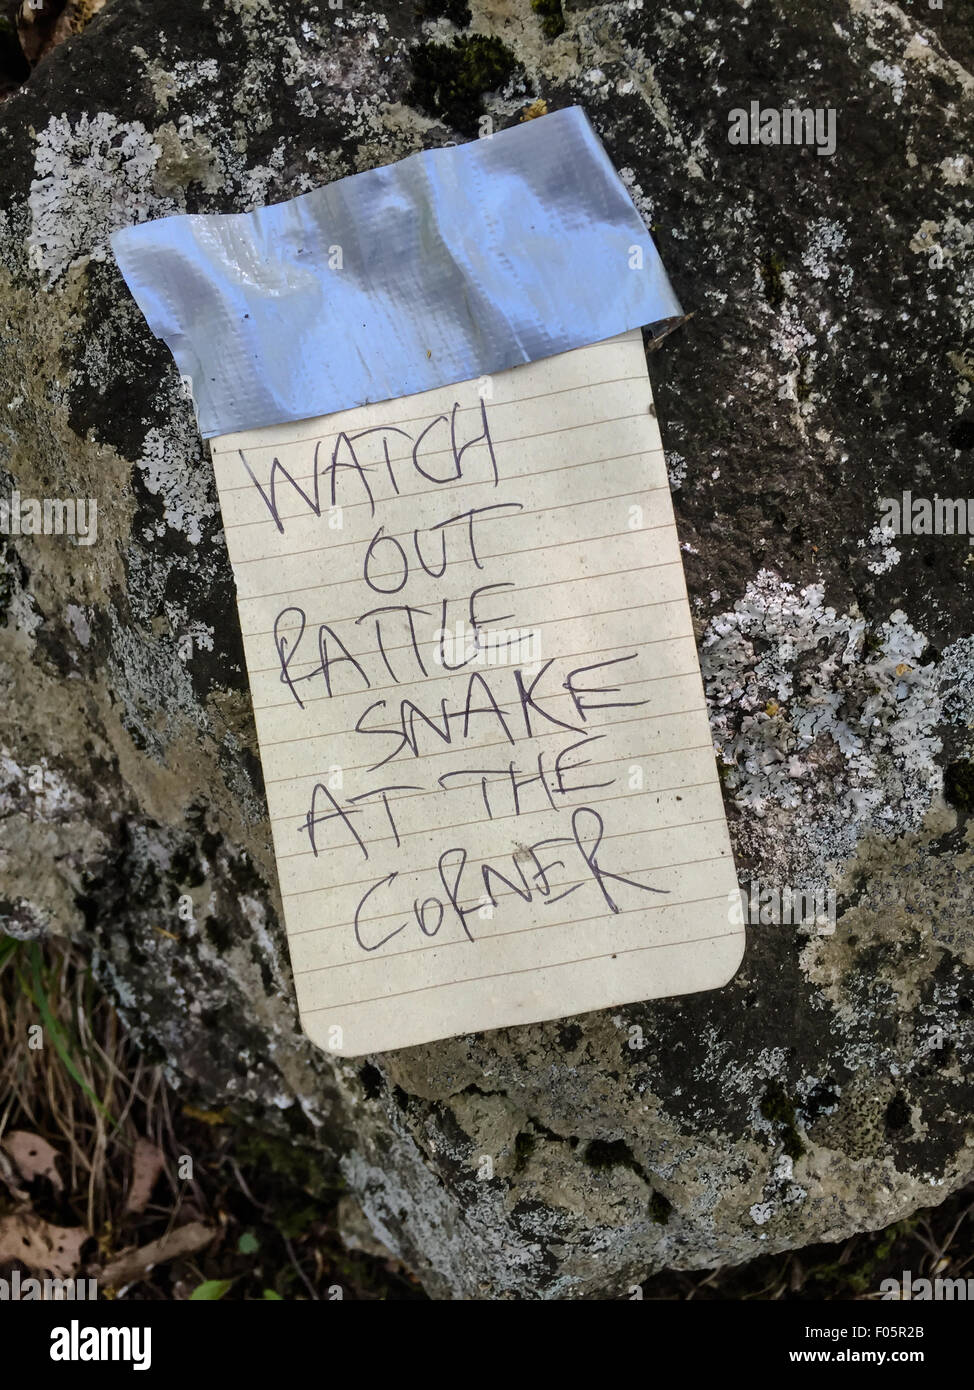 A handwritten note warns hikers of a rattlesnake around the corner - Stock Image